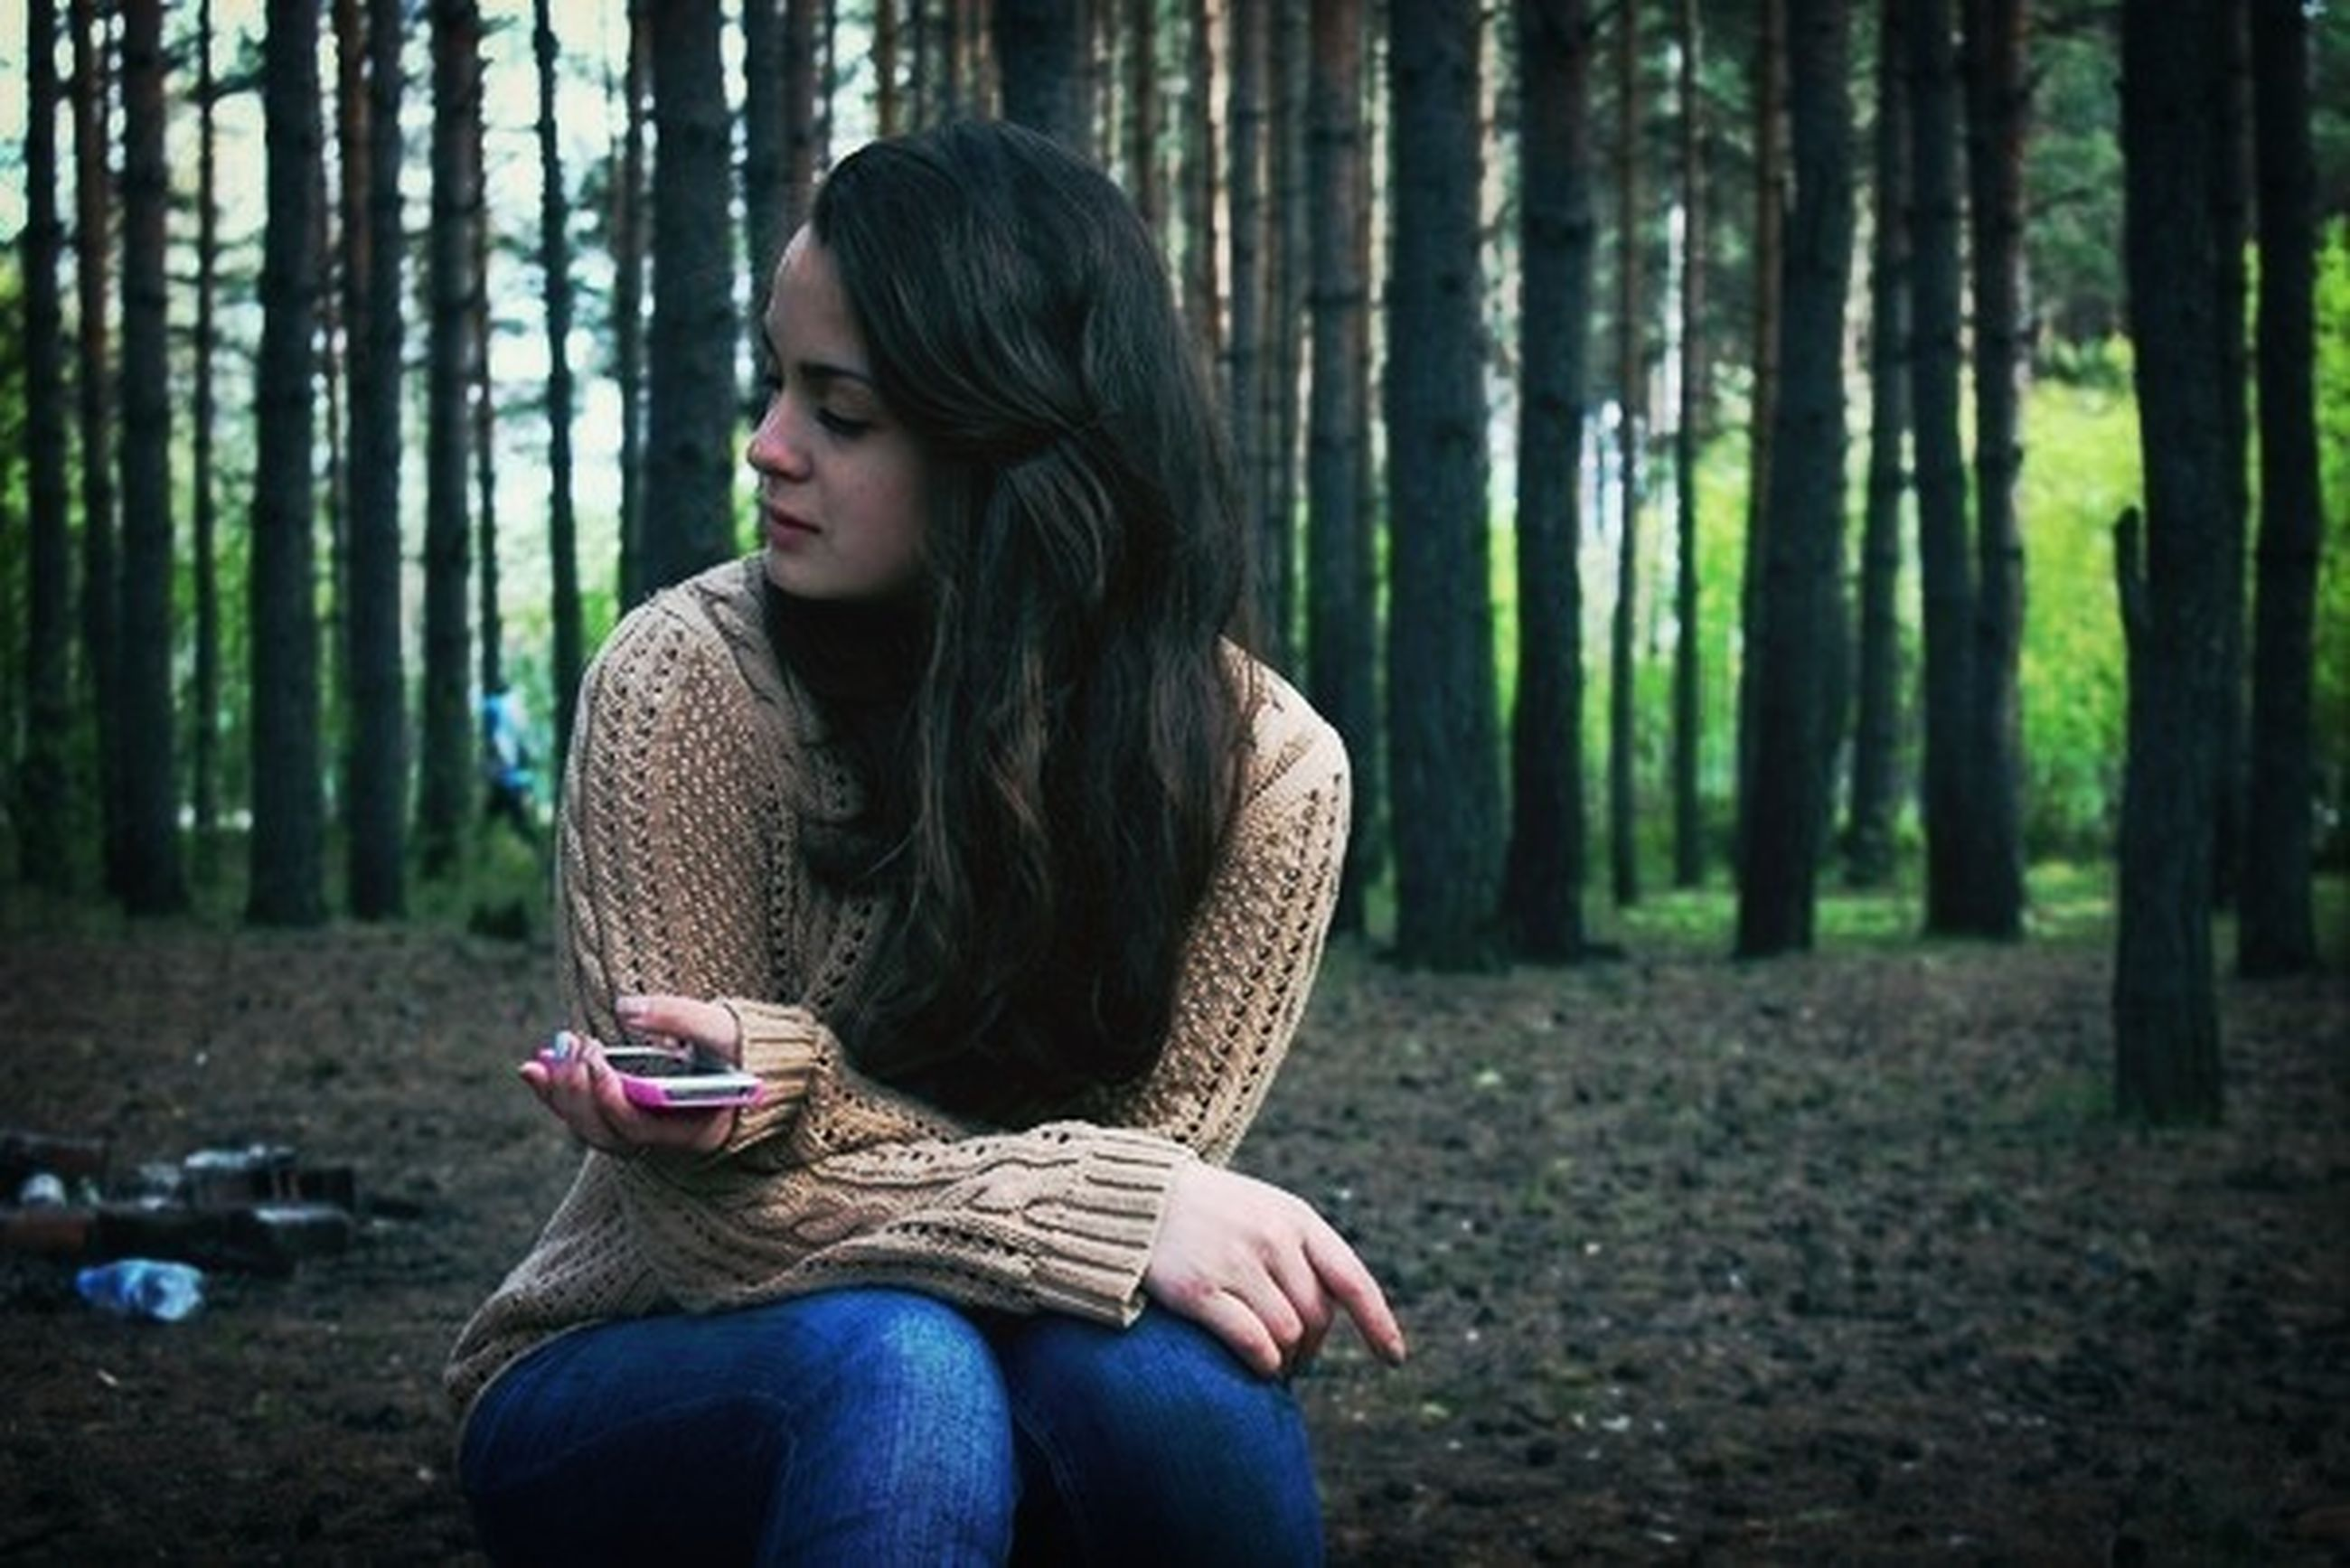 young adult, lifestyles, tree, casual clothing, leisure activity, forest, person, three quarter length, young women, standing, looking at camera, waist up, portrait, sitting, tree trunk, long hair, focus on foreground, front view